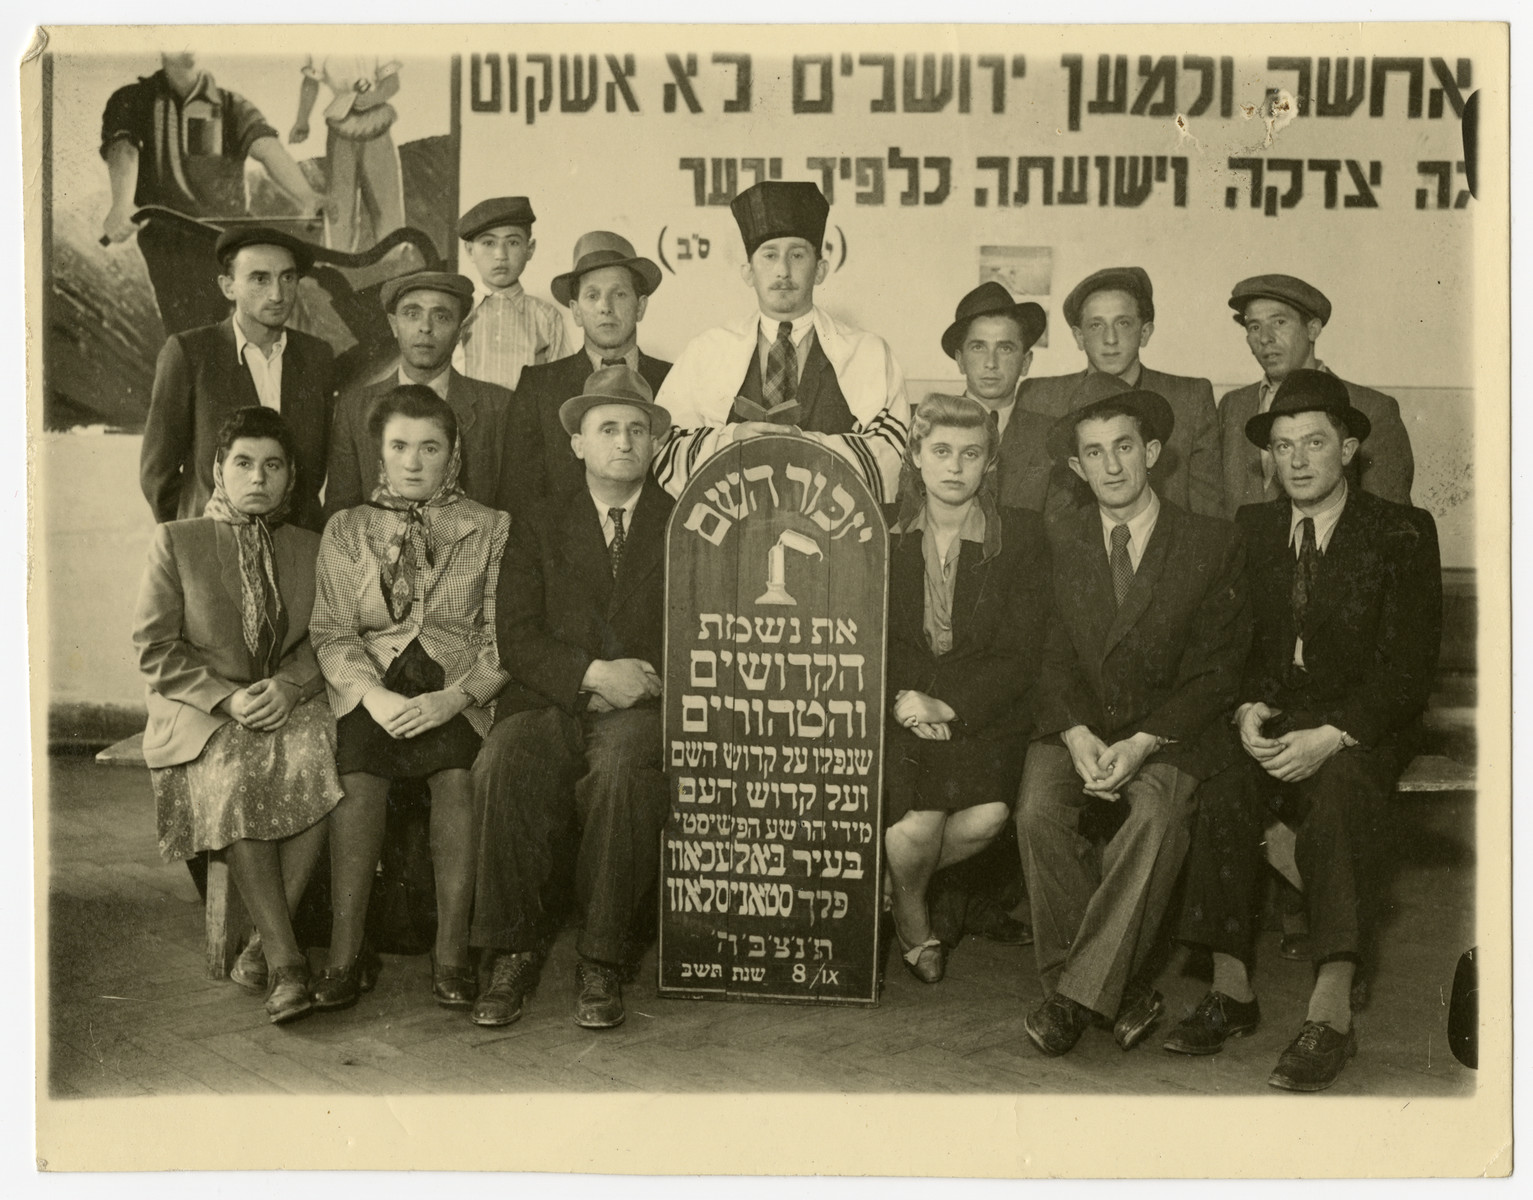 Jewish survivors from Bolechow gather for a memorial to the victims of the town.    Regina Zarwanitzer Lowensohn is seated to the right of the memorial.  To her right are brothers Avrum and Leizer who later moved to the U.S..